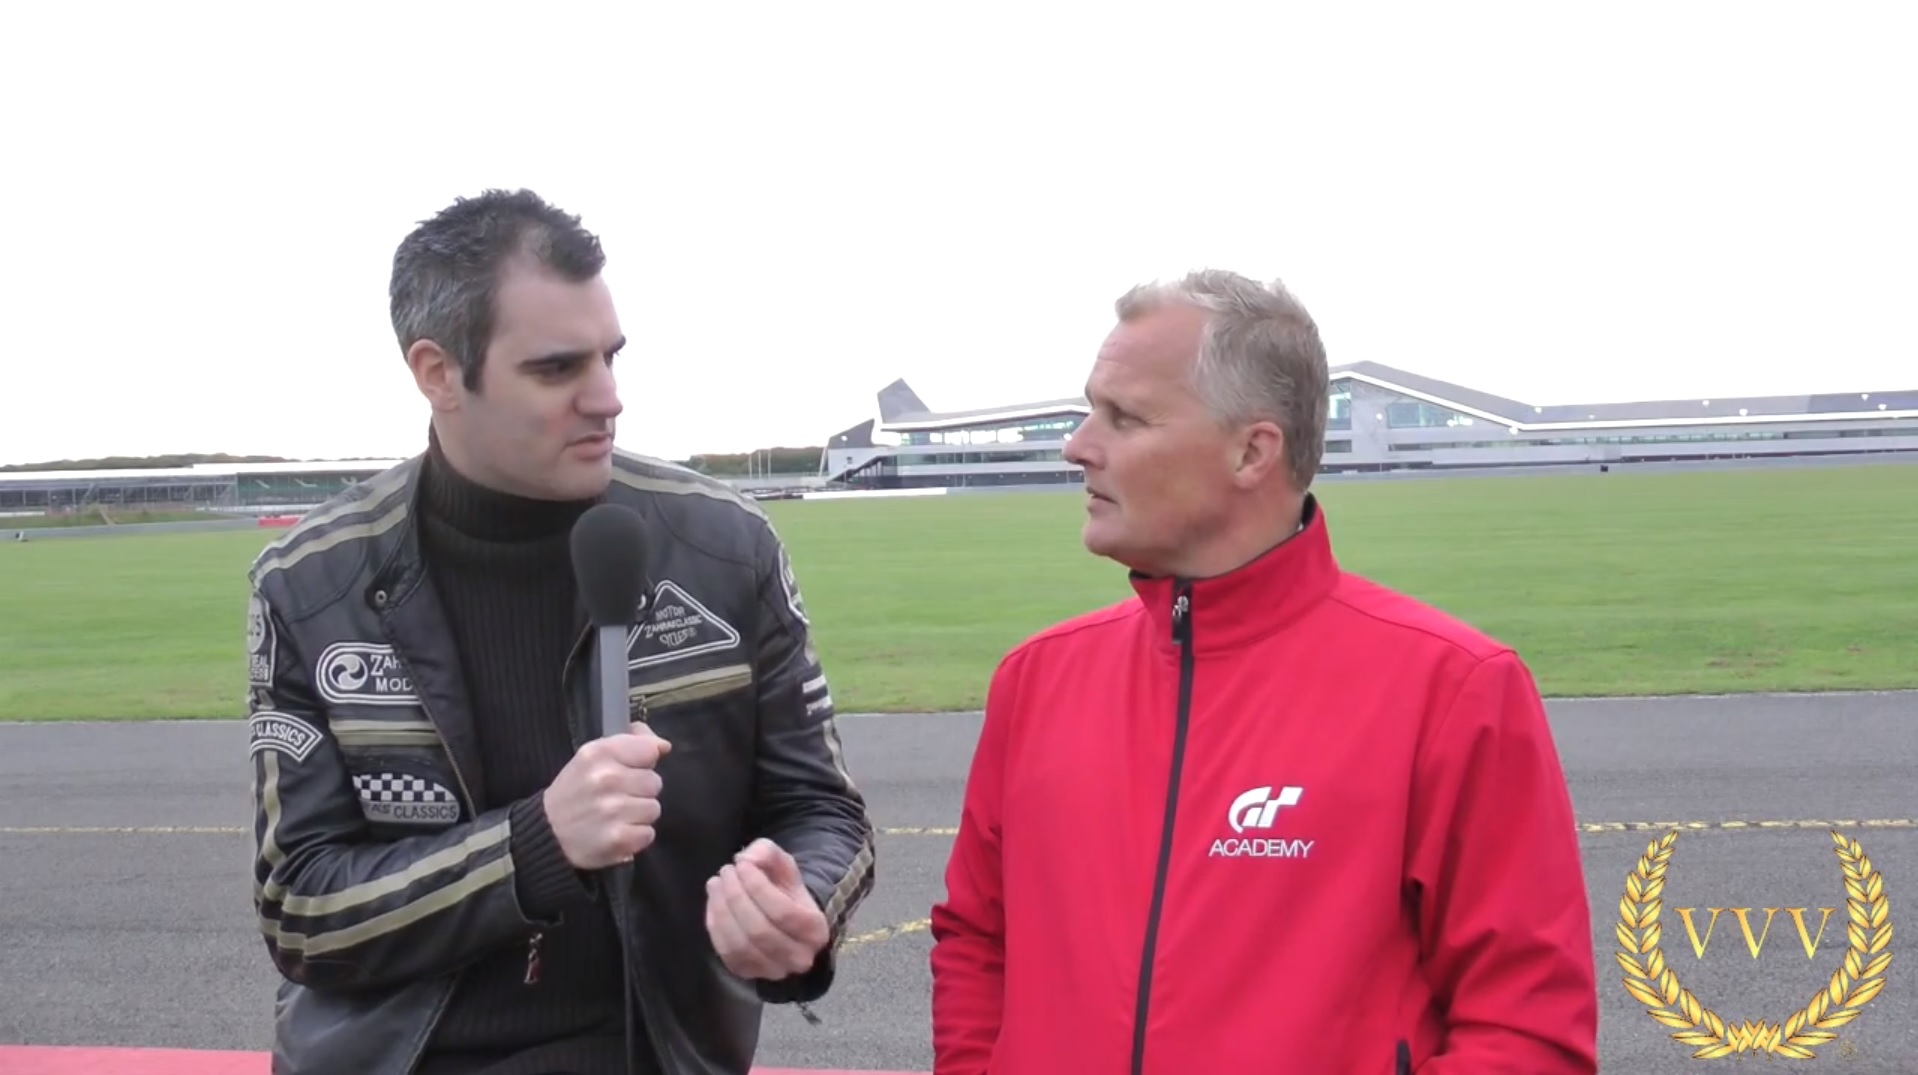 Alan interviews GT Academy judge Johnny Herbert